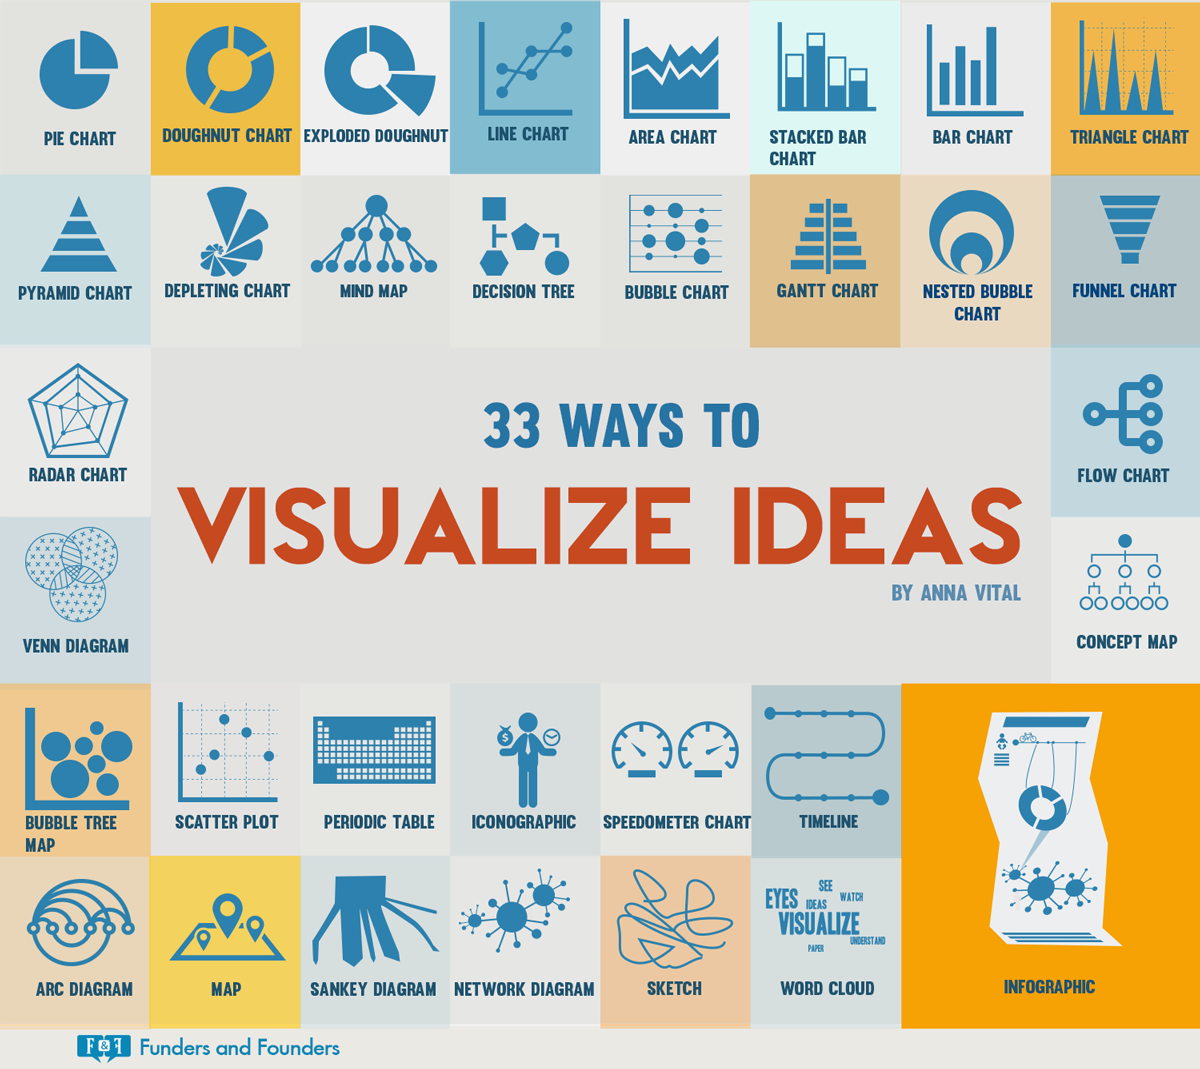 33 Creative Ways to Visualize Ideas [Infographic]